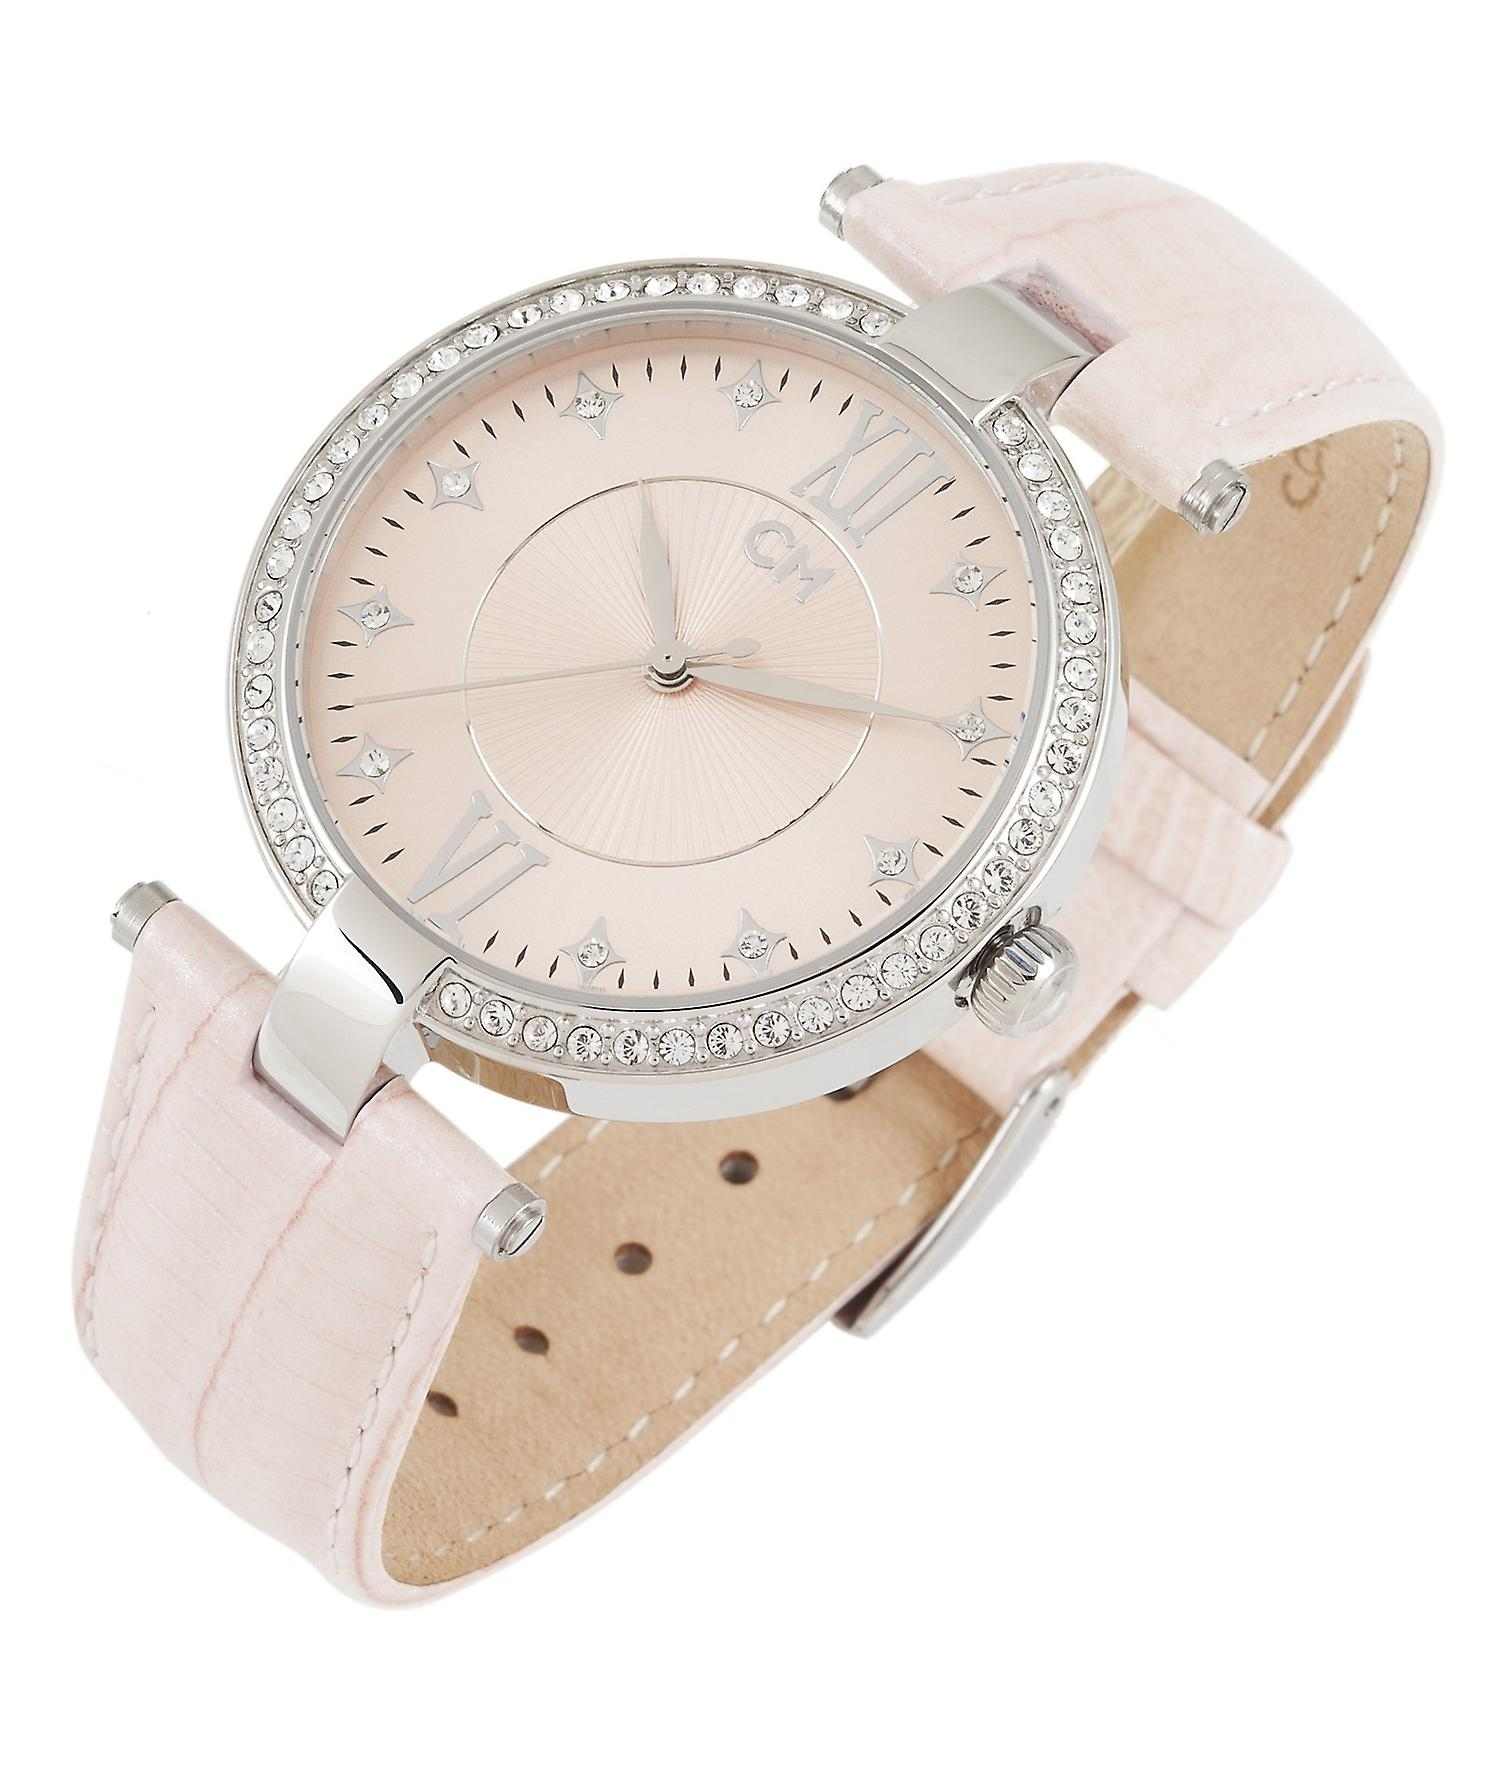 Carlo Monti Ladies Quartz Watch Messina CM506-168